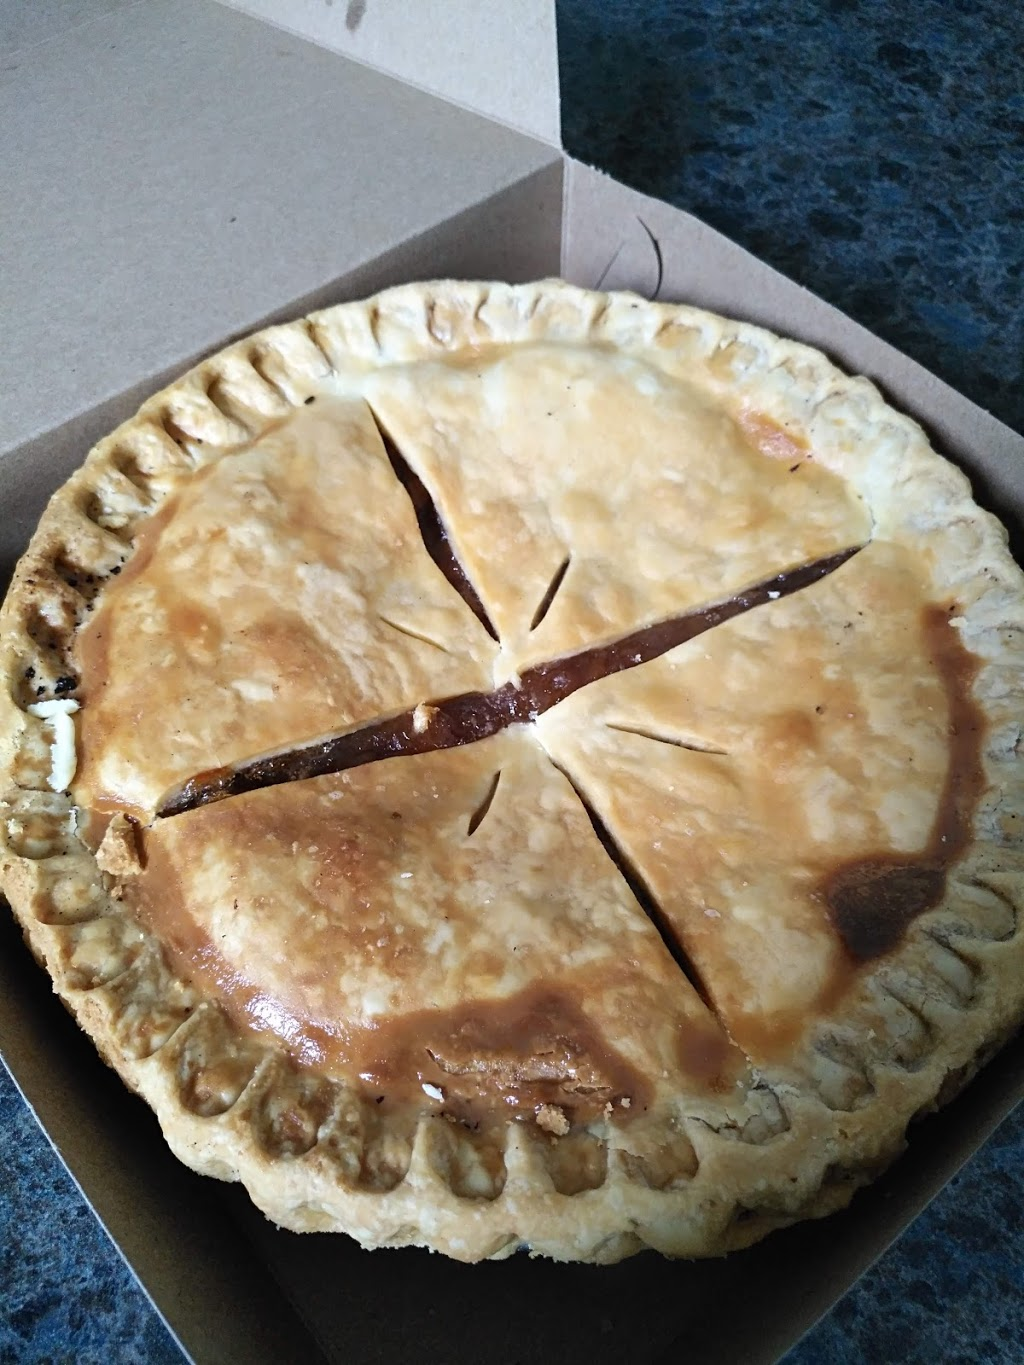 Zehr's Country Market   bakery   75089 Bluewater Hwy, Bayfield, ON N0M 1G0, Canada   5195655566 OR +1 519-565-5566